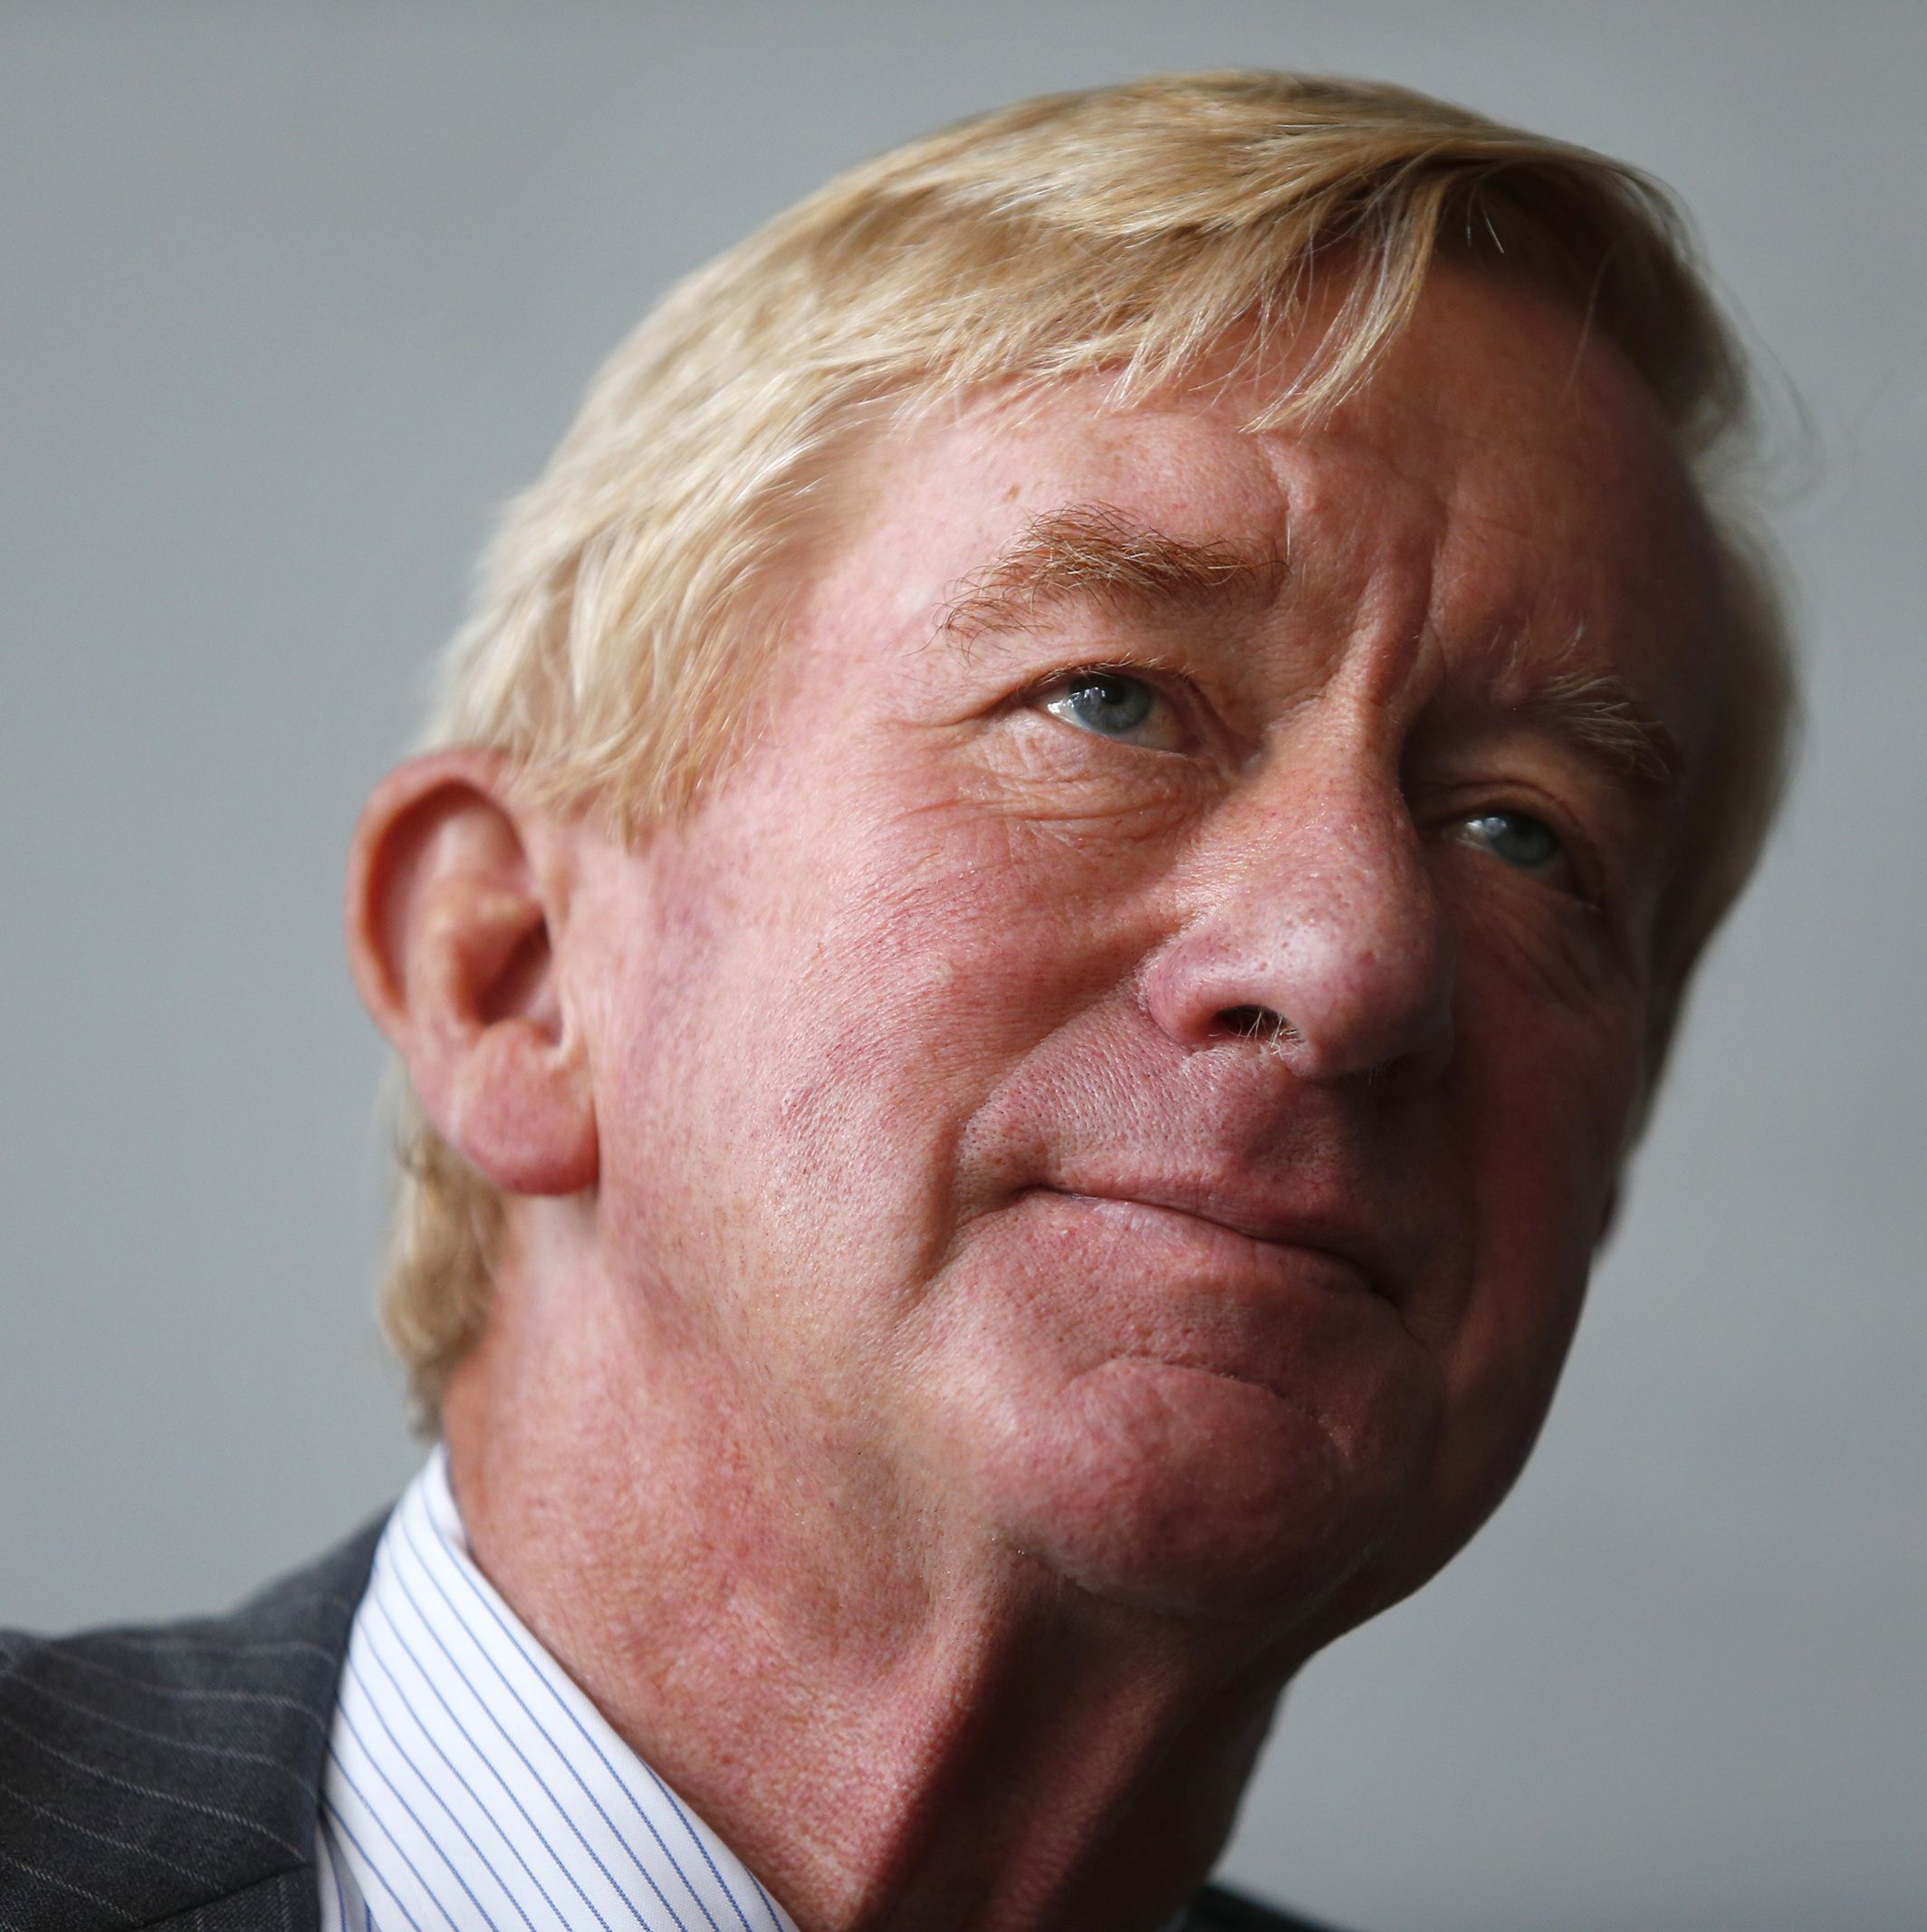 Former Massachusetts Governor Bill Weld was the Libertarian Party's candidate for Vice President in 2016, and has announced that he will now run against Trump as a Republican.